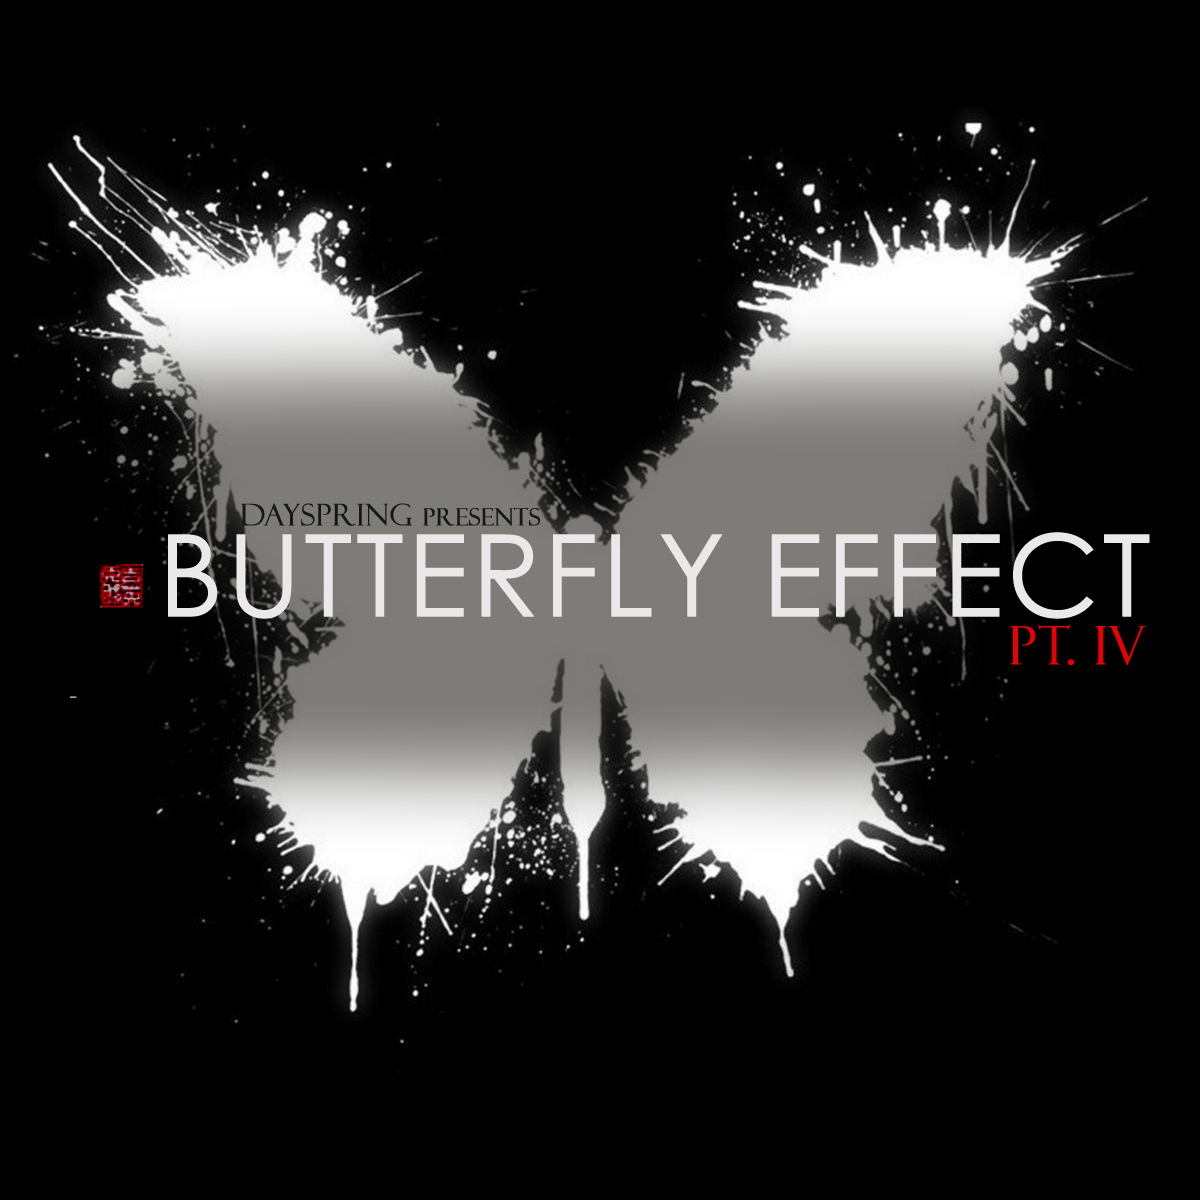 Coming Soon: 'Butterfly Effect Pt. IV'